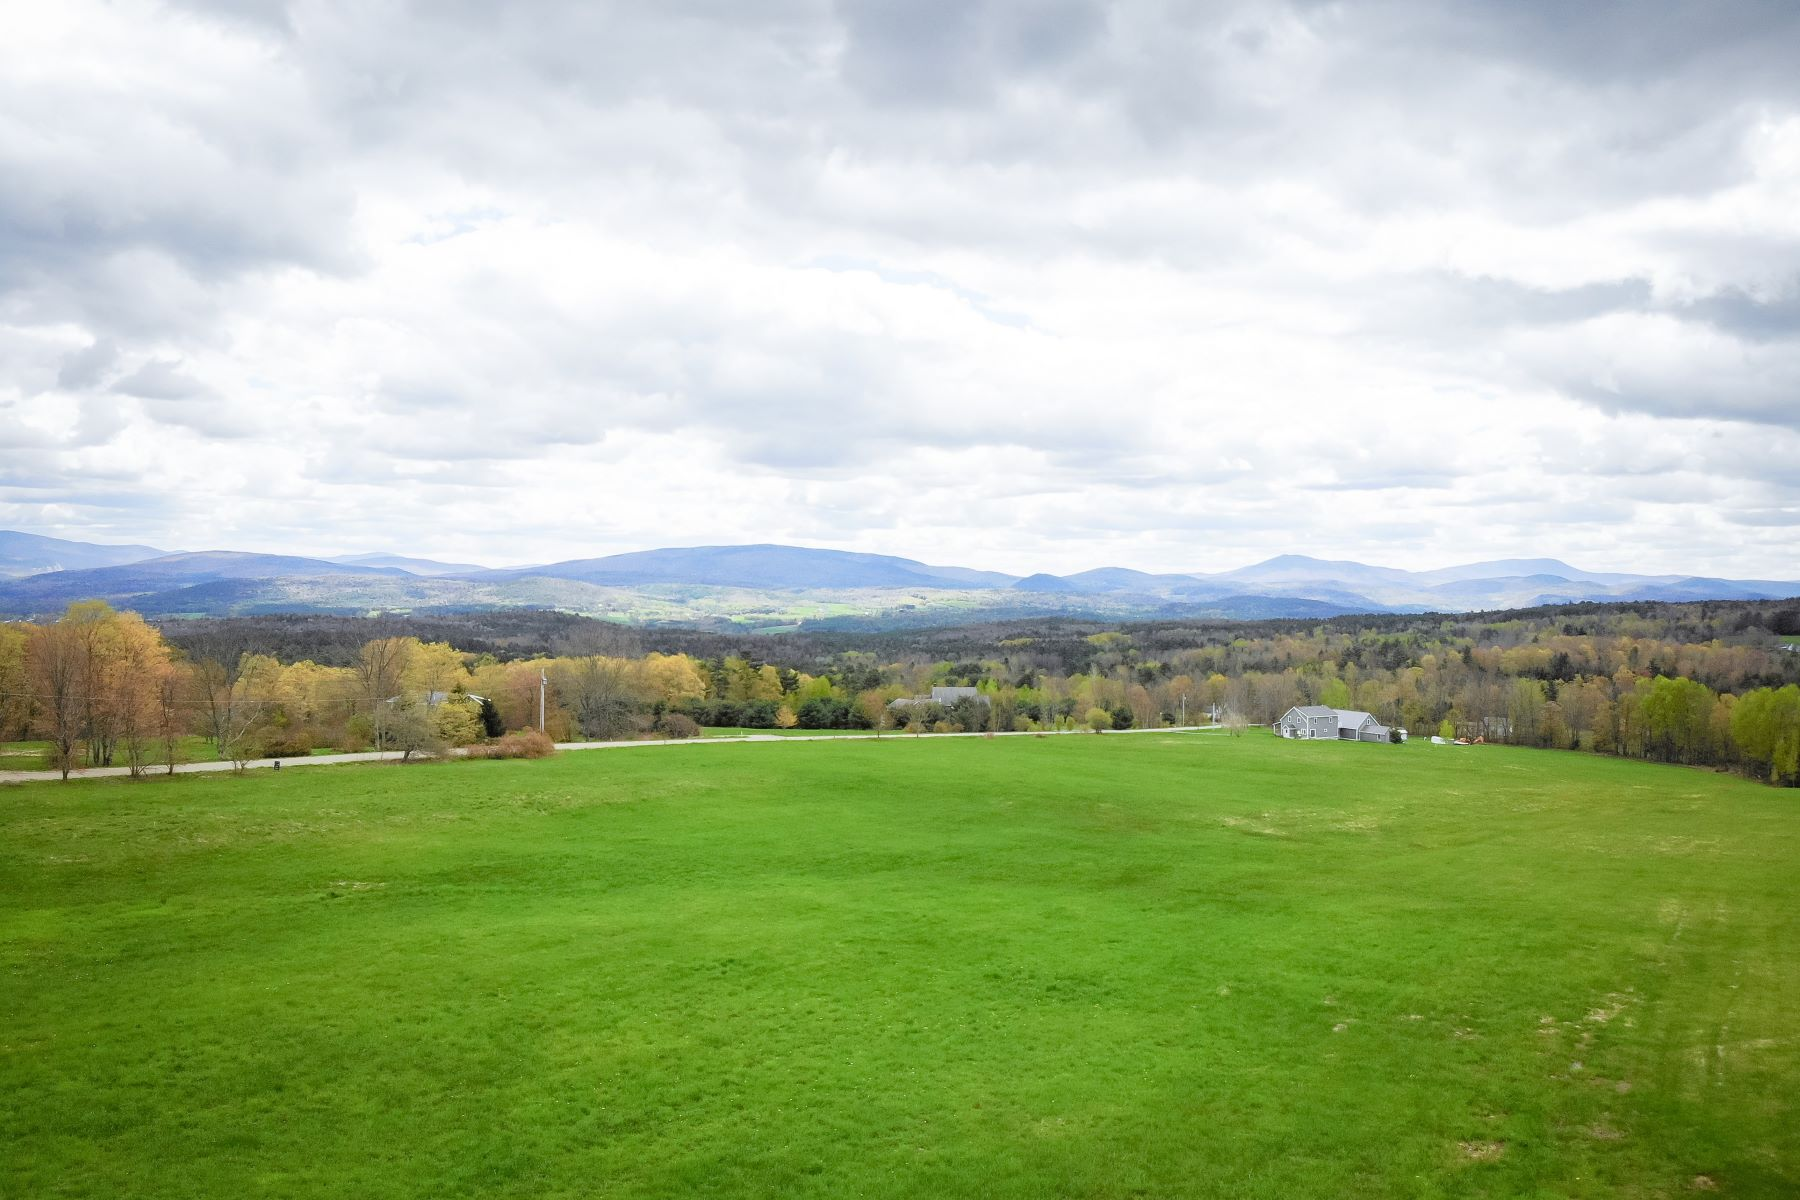 Land for Sale at 17 Acres in Newbury 0 Rogers Hill Rd Newbury, Vermont 05051 United States